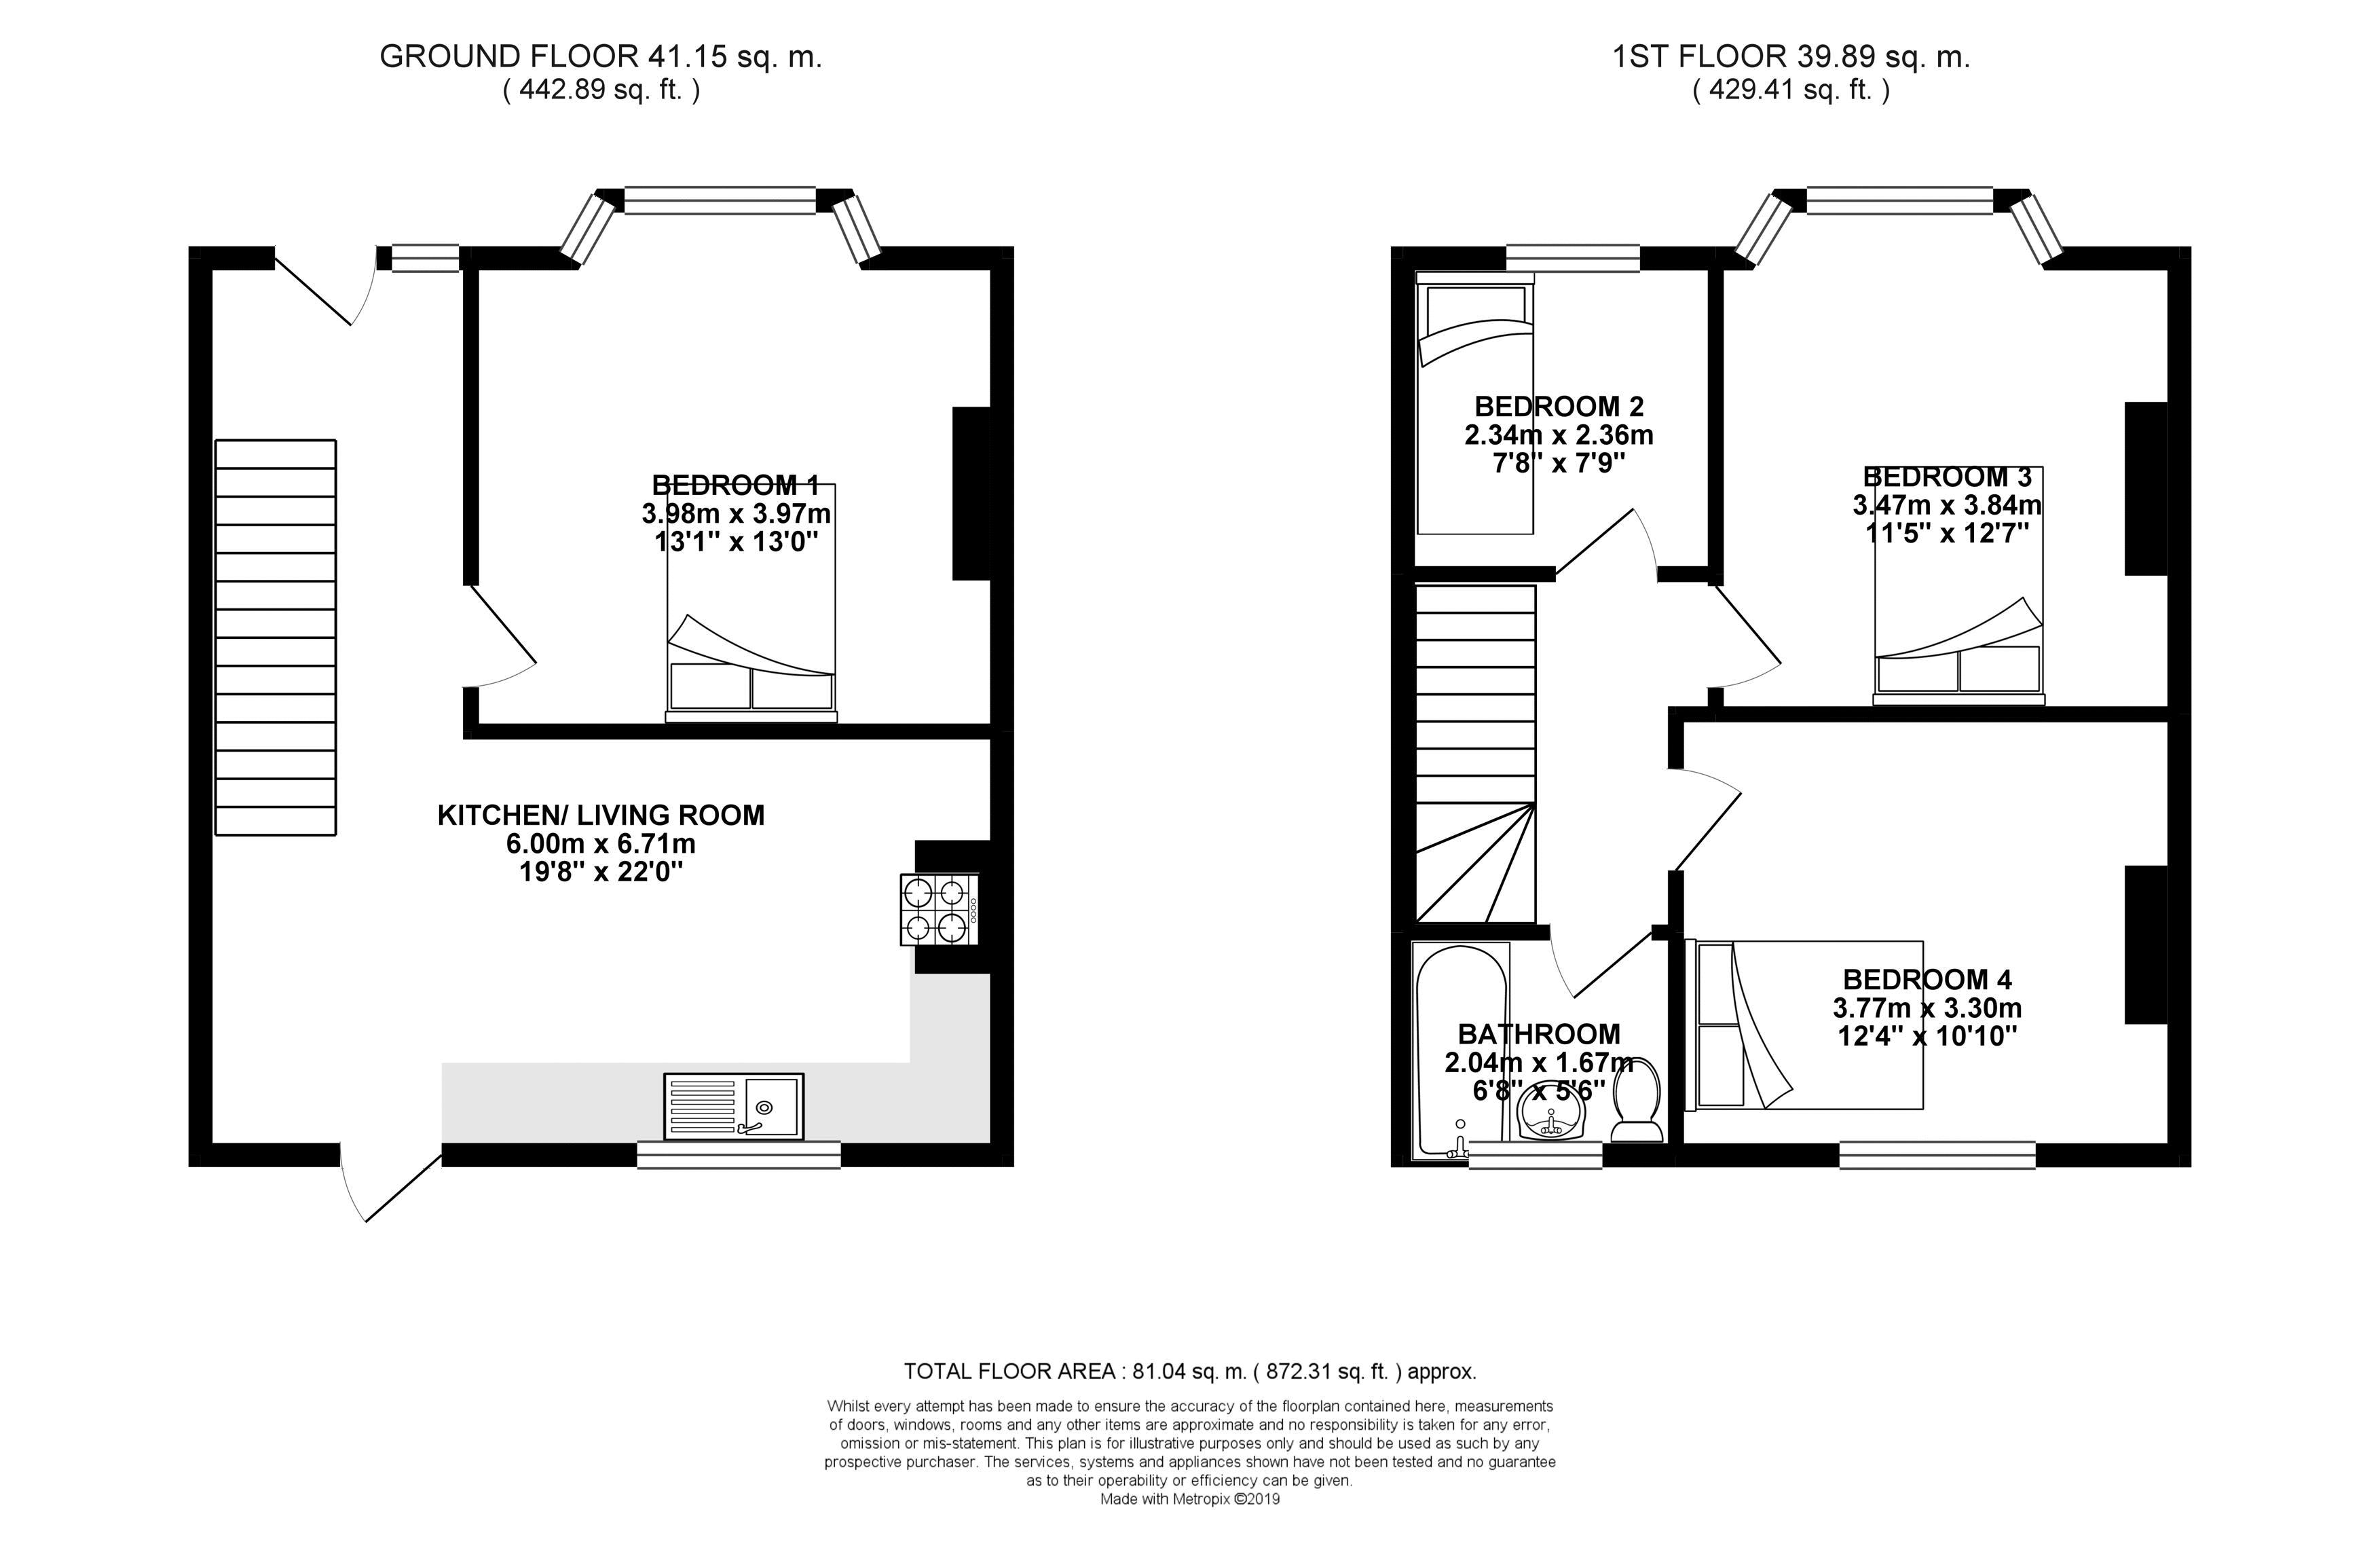 Floor plans for Carlyle Avenue, Brighton property for sale in Bevendean, Brighton by Coapt